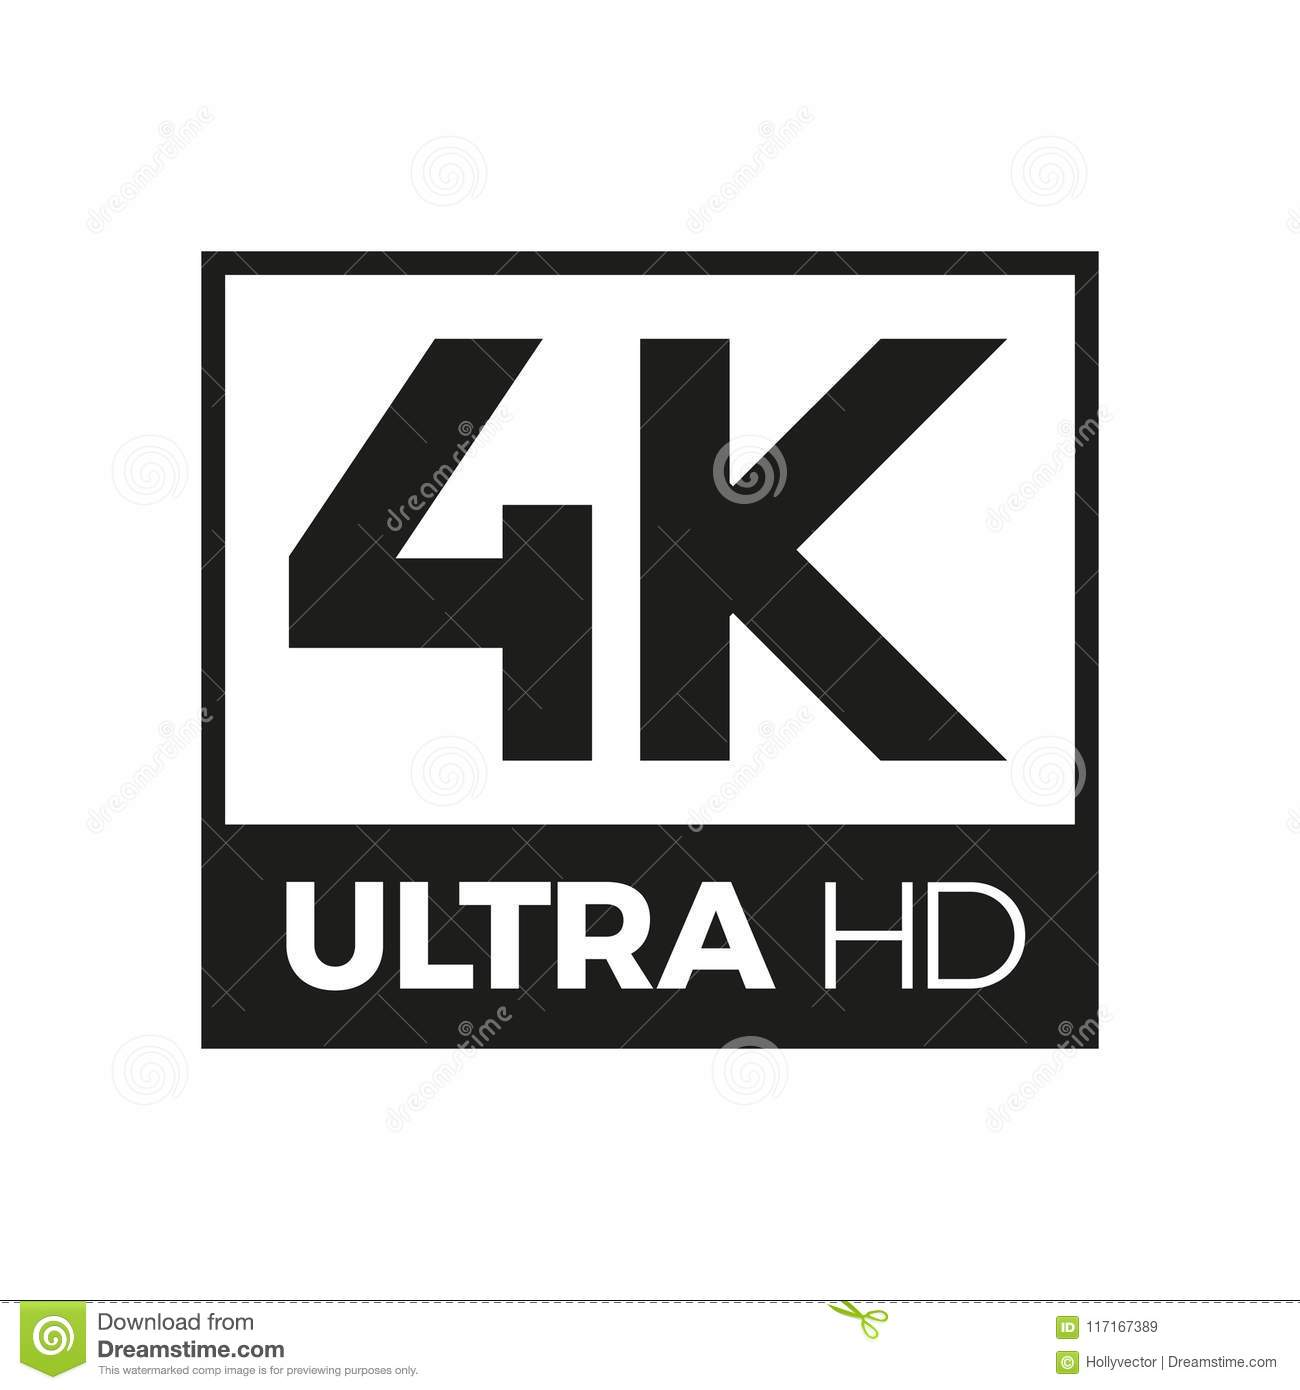 4k ultra hd symbol stock vector. illustration of monitor - 117167389